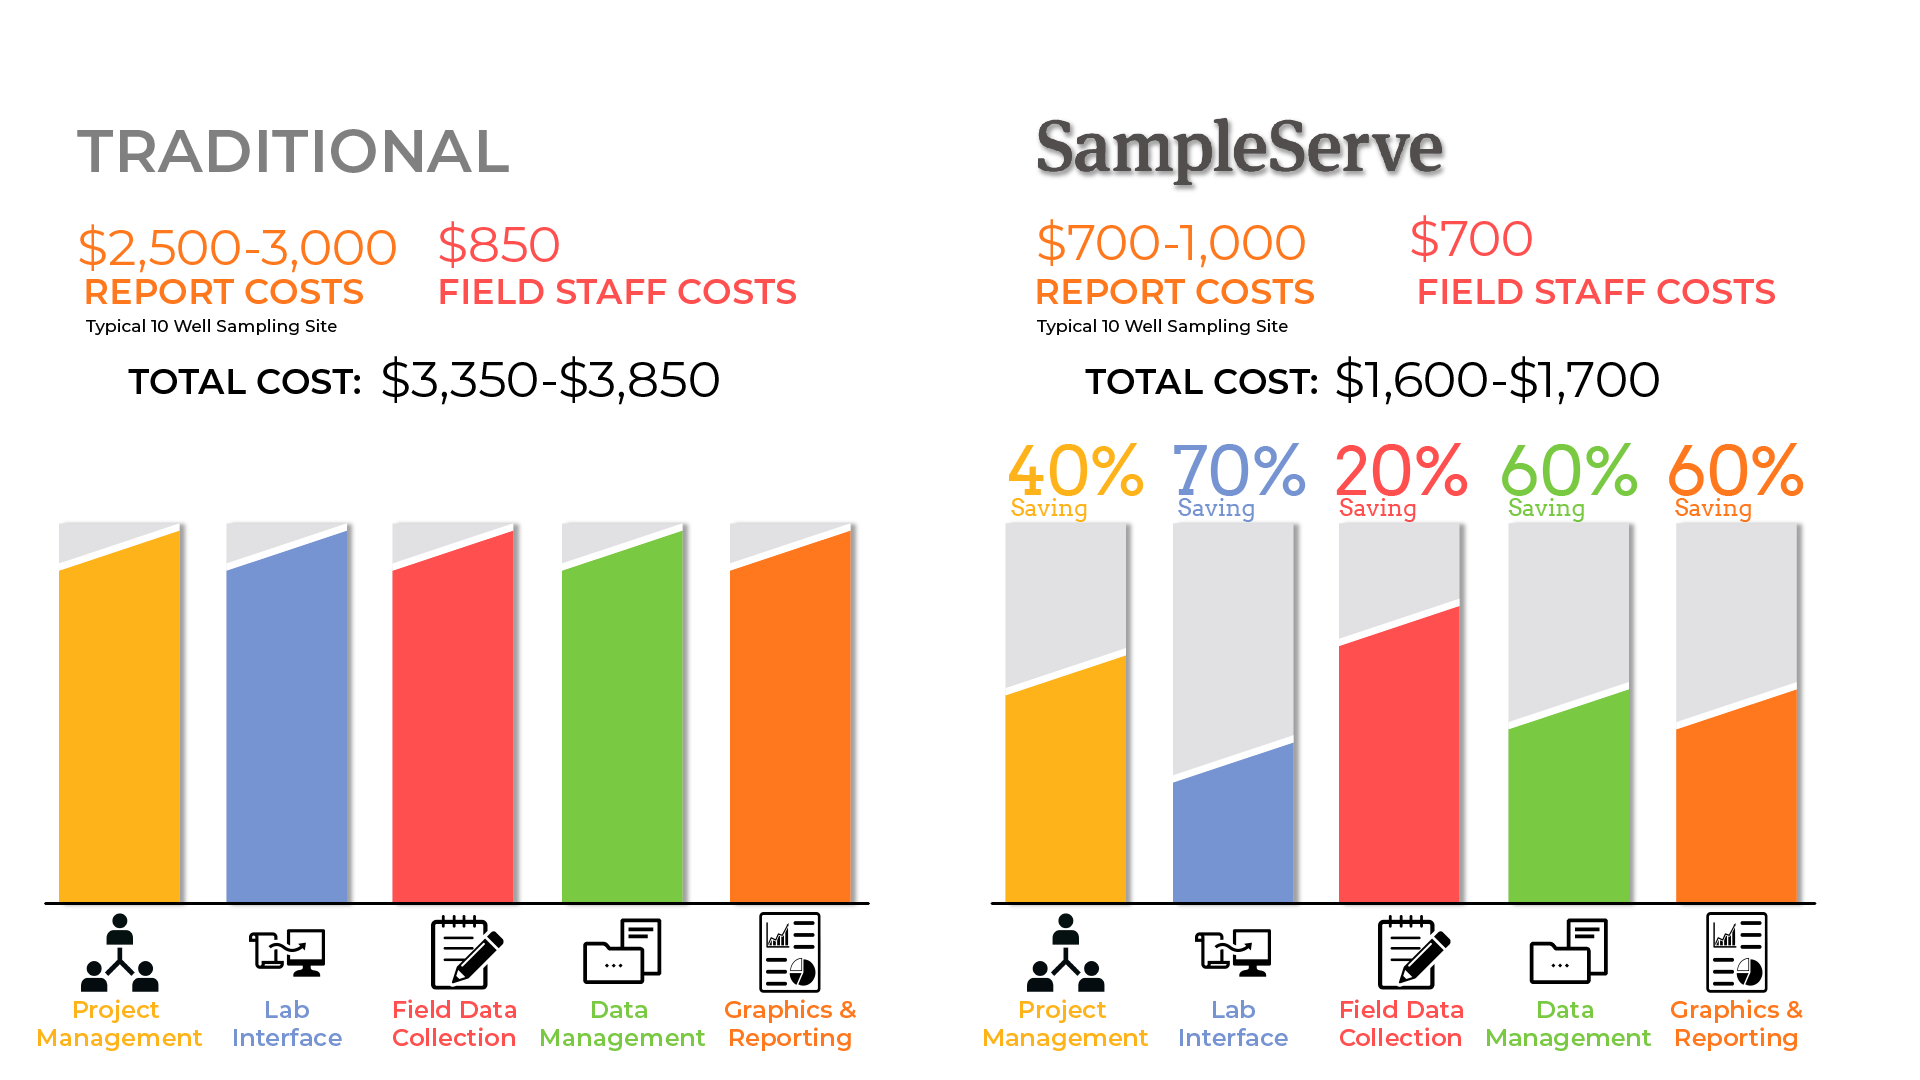 SampleServe Cutting Environmental Costs